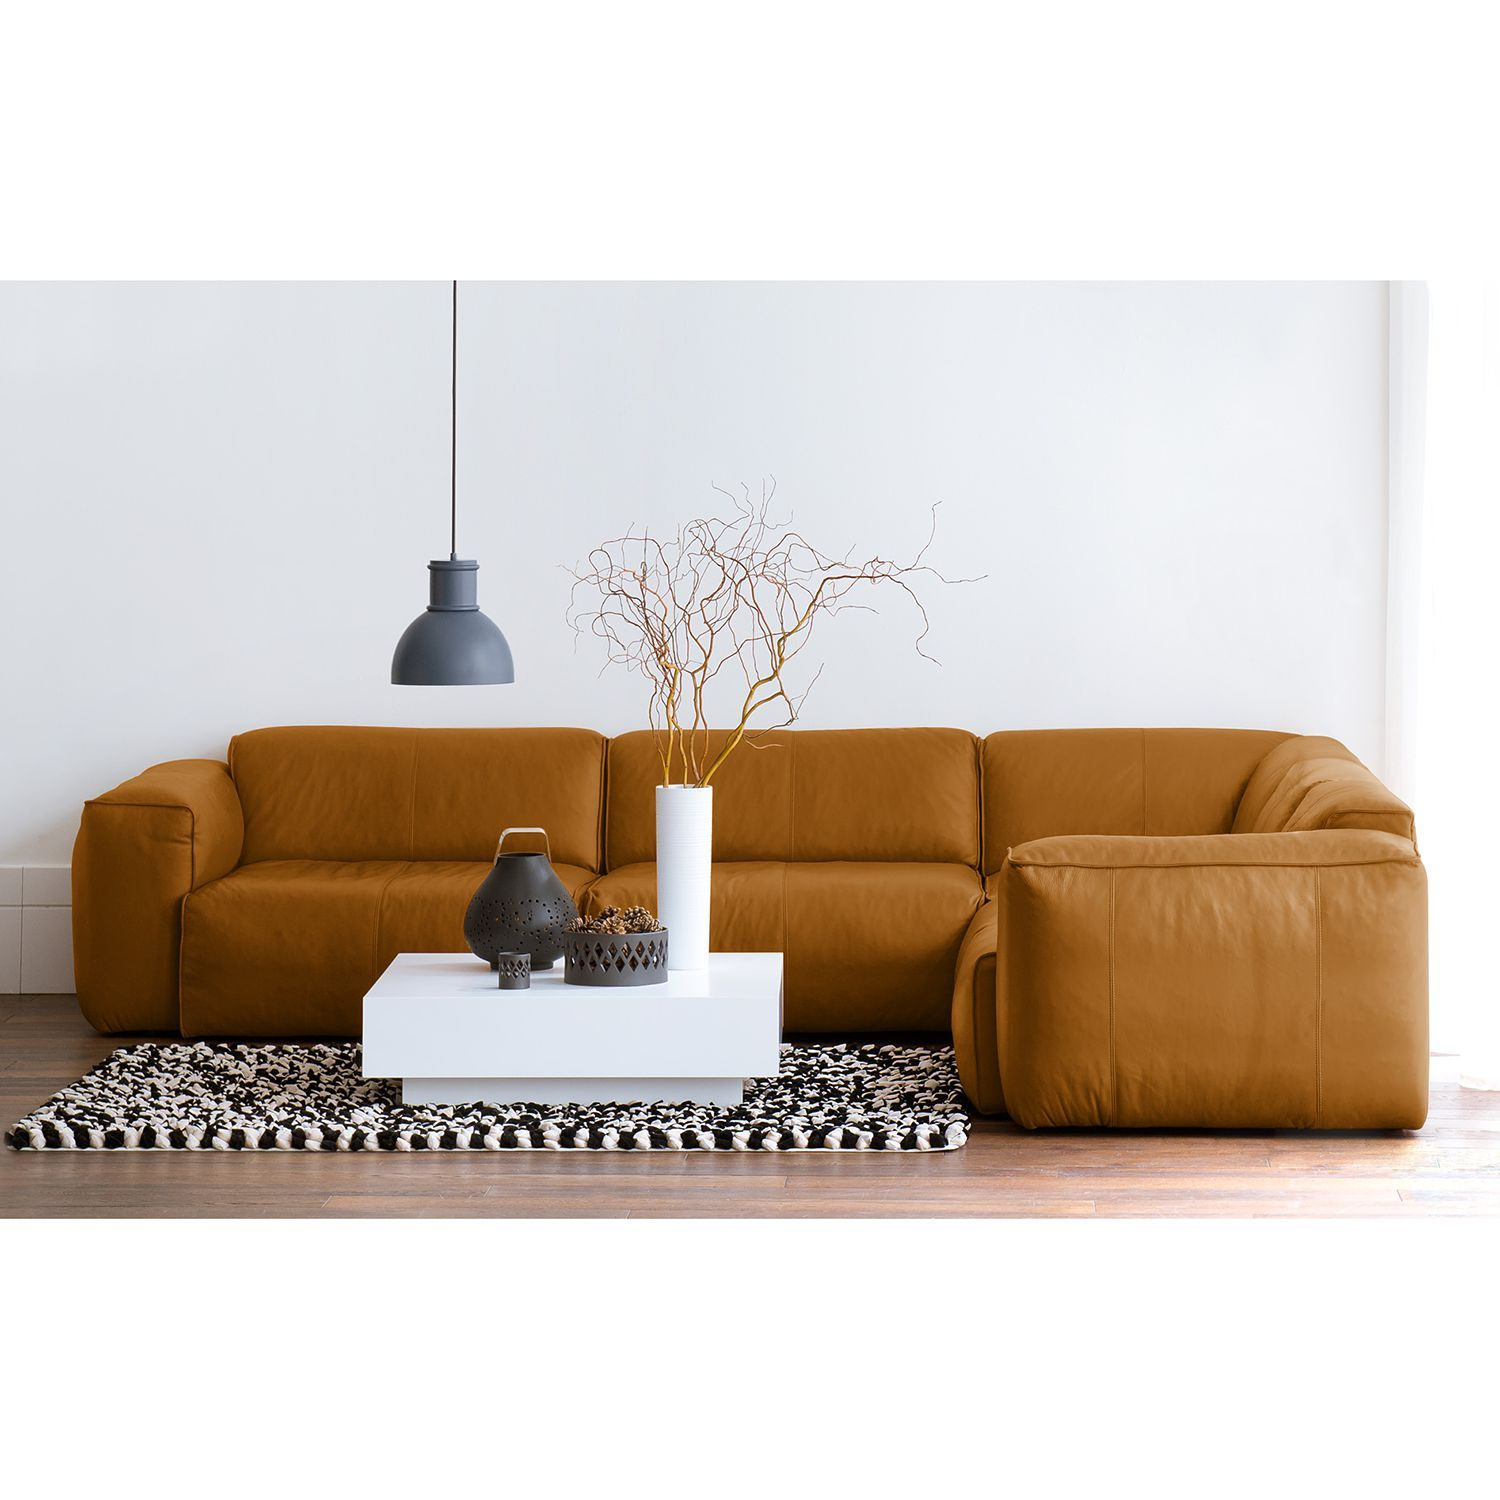 Sofa Design Institute Senior High Kunstleder Couch Gunstig Moderne Wohnzimmer Couch Ledersofa Neu Beziehen Munchen Leather S Ecksofa Couch Gunstig Sofa